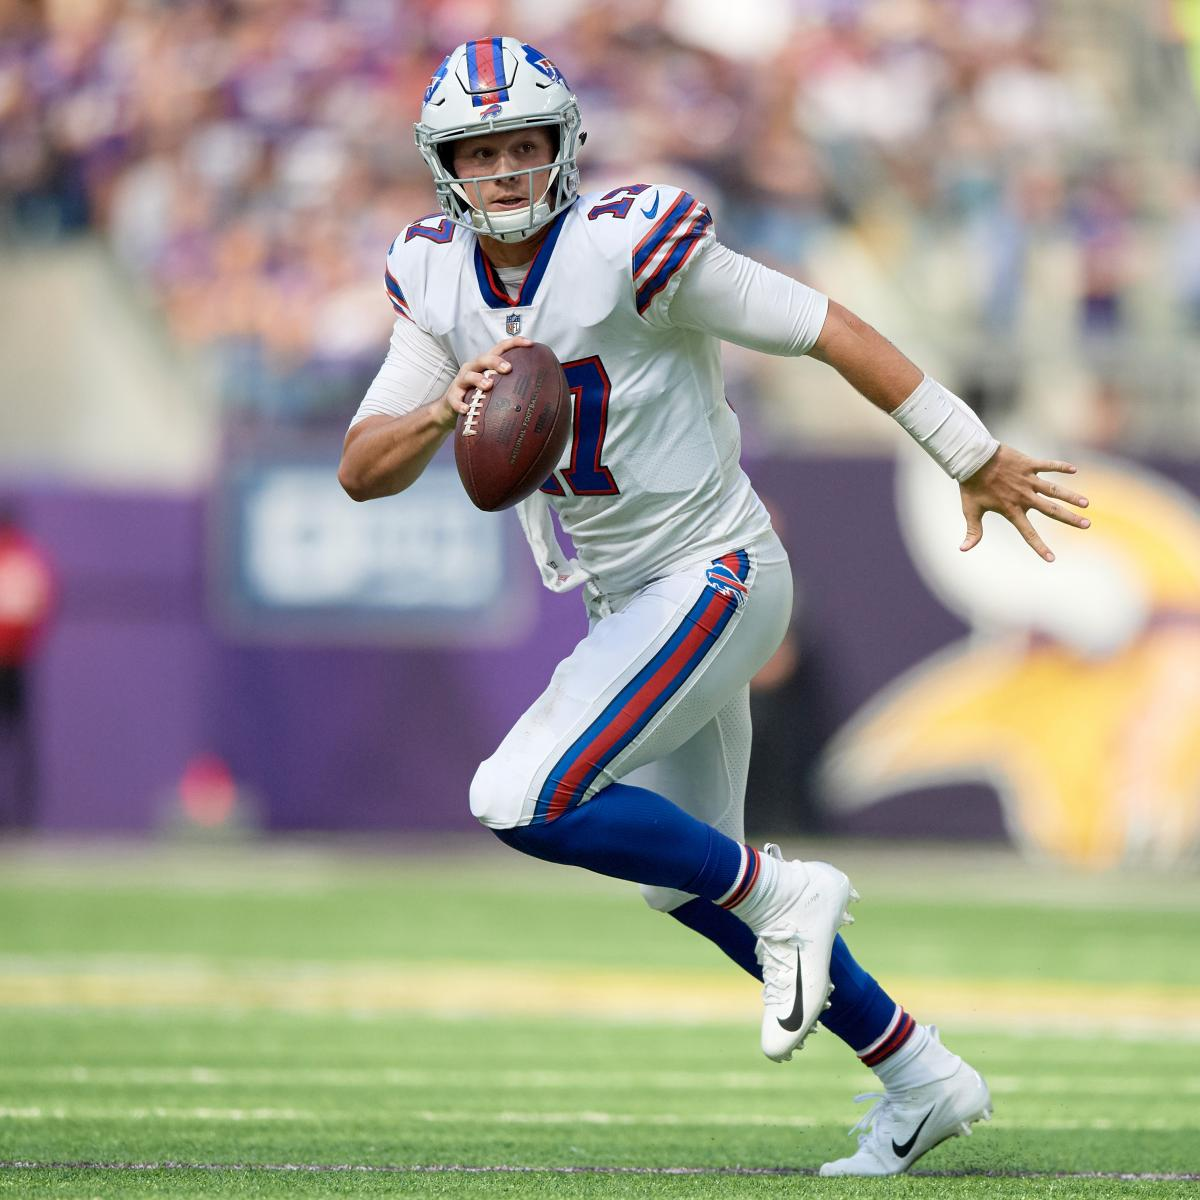 NFL Predictions Week 4: Vegas Odds, Spreads and Picks for All Games